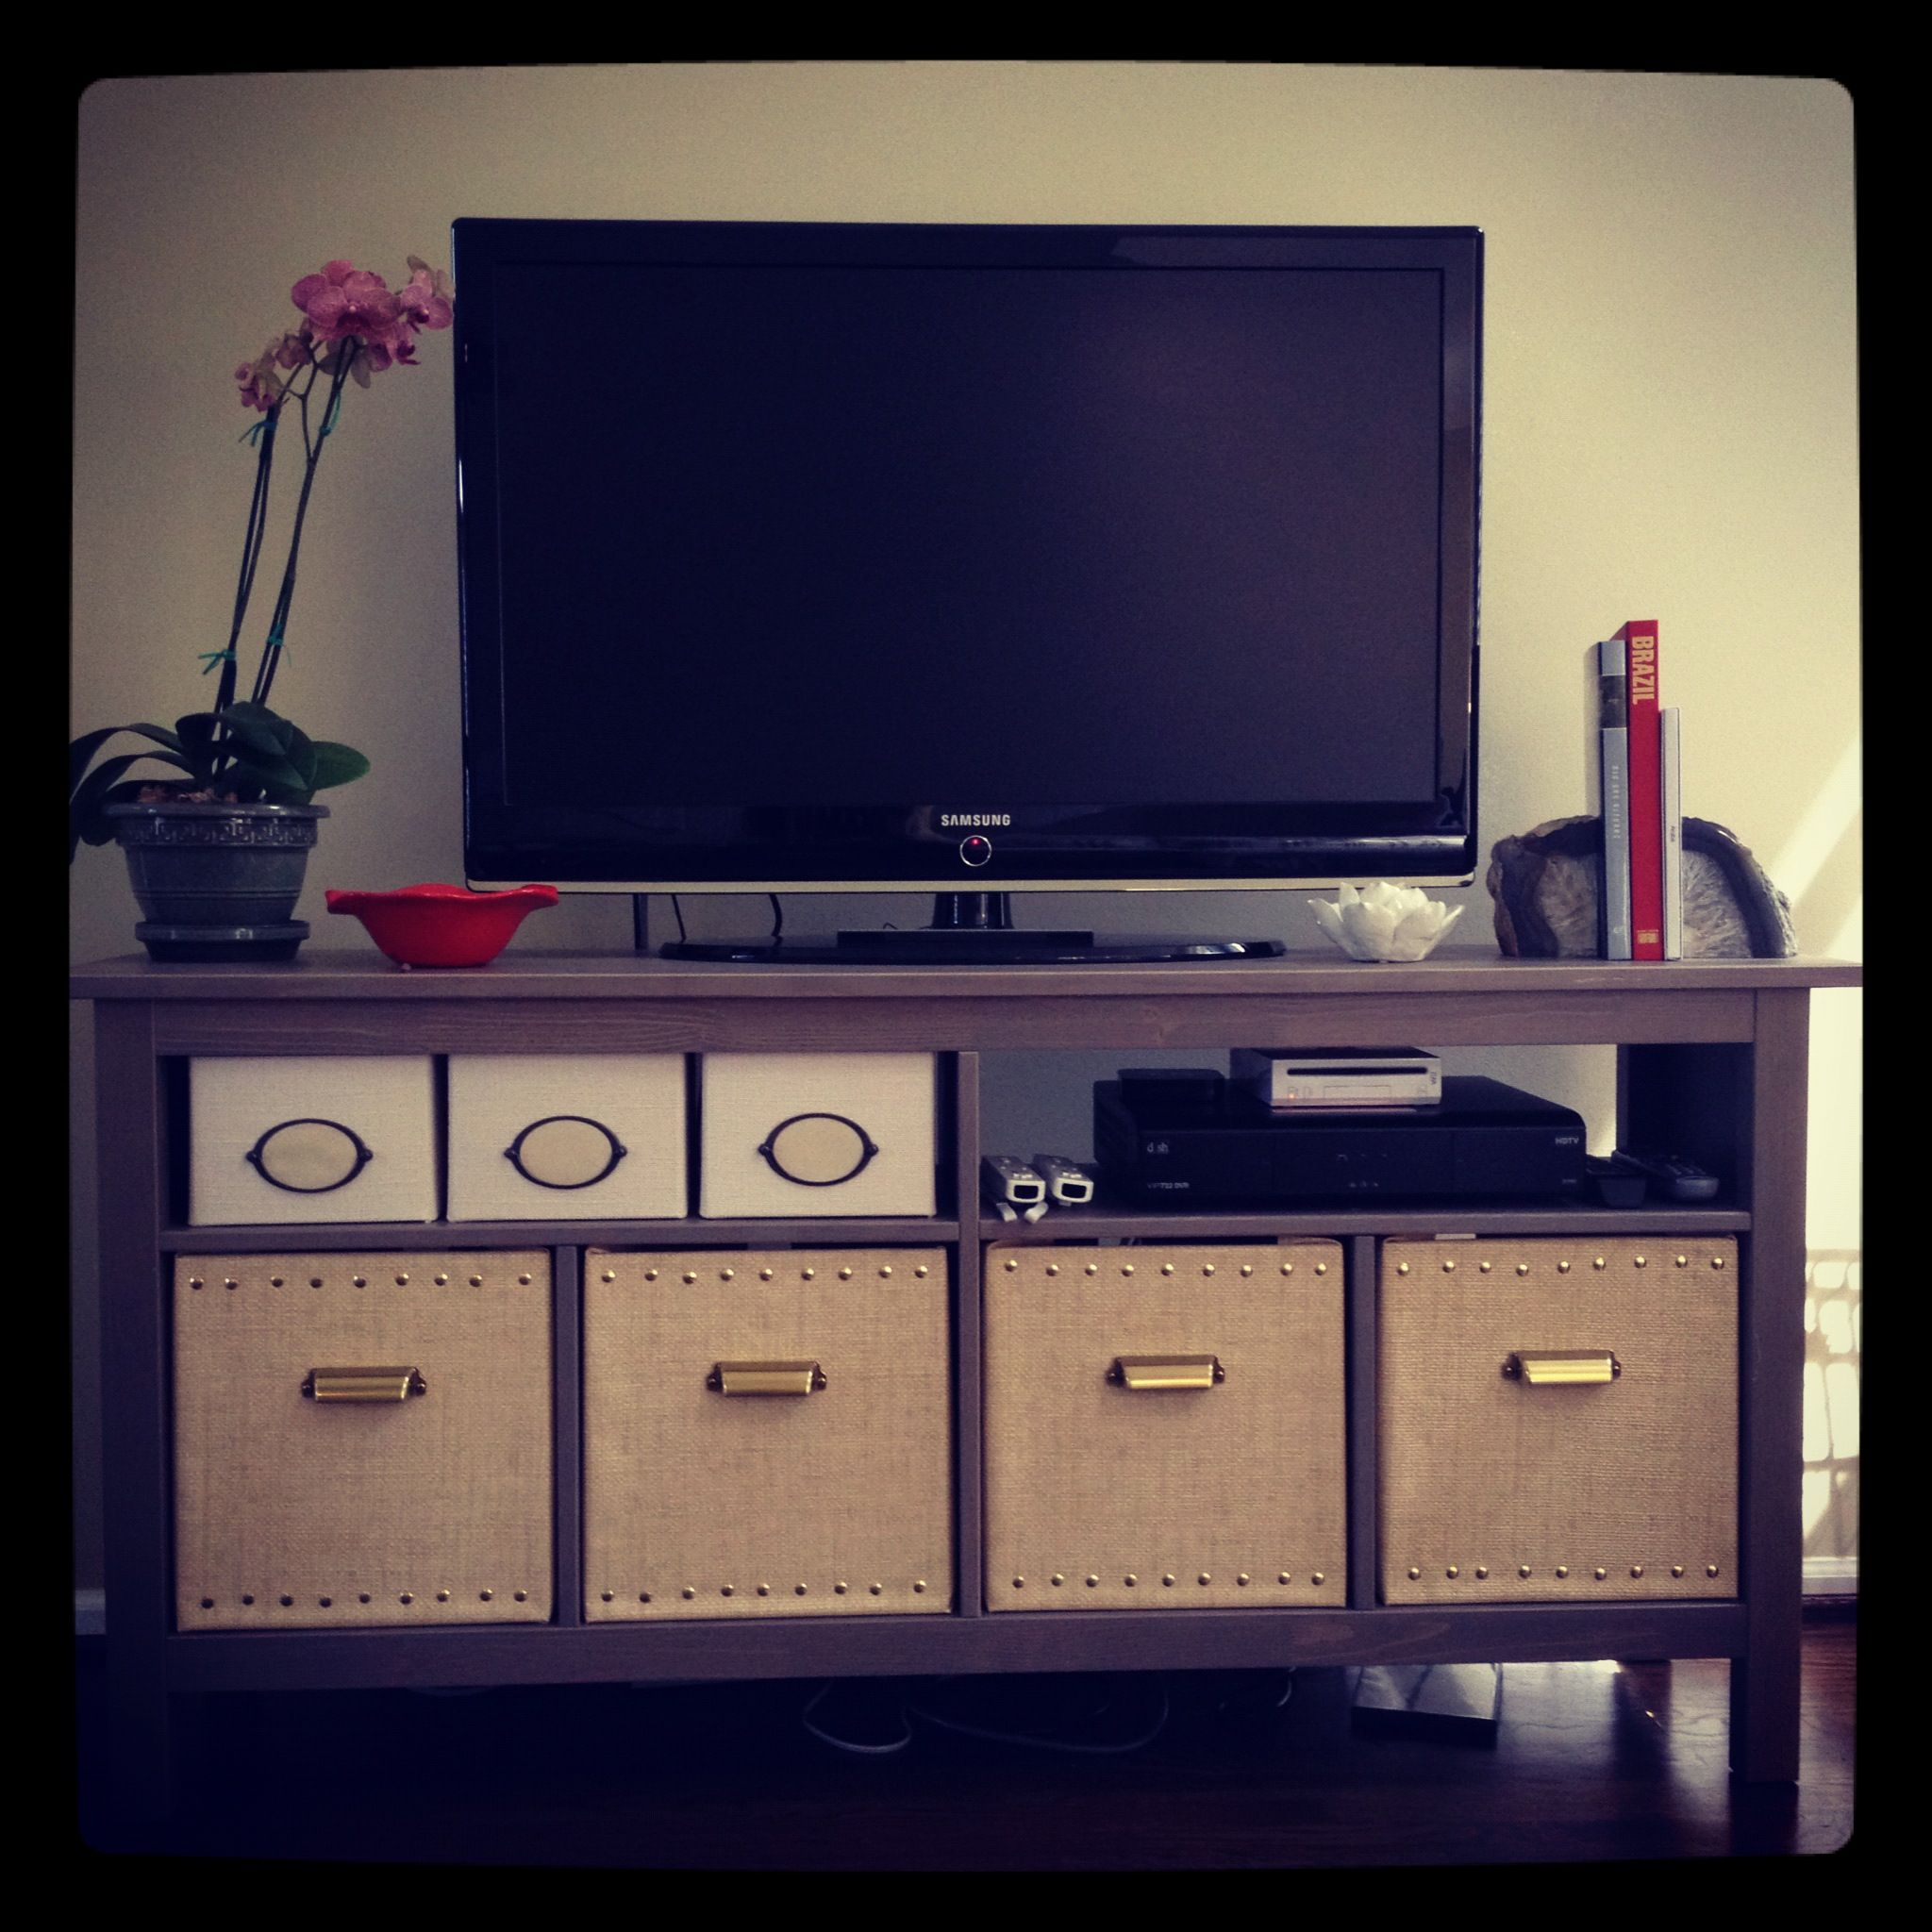 Hemnes sofa table in gray brown left out 2 of the dividers on top